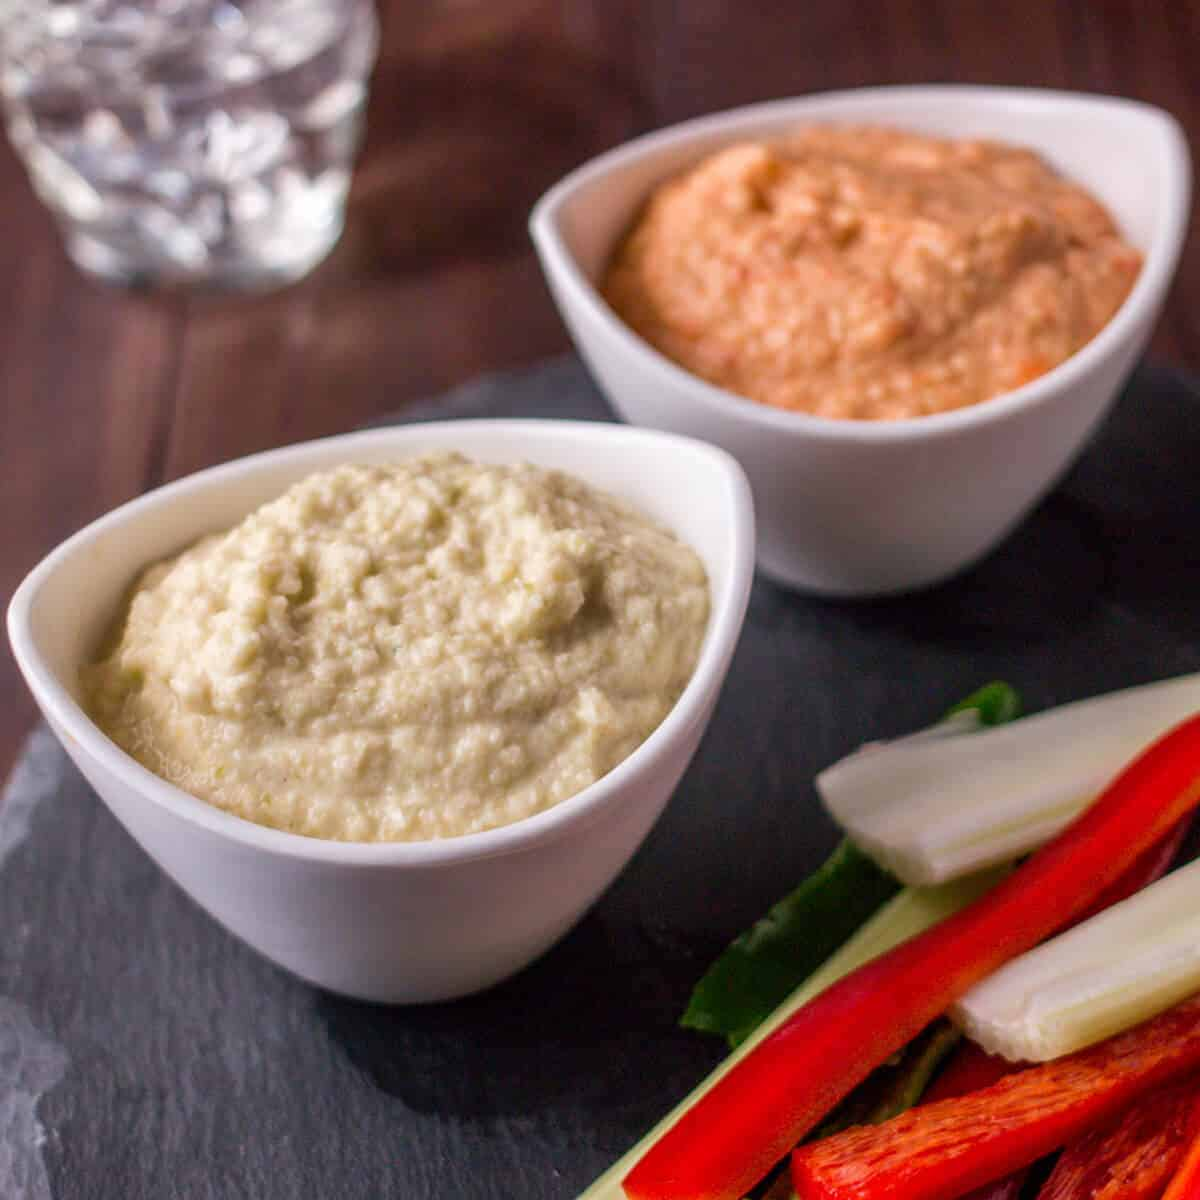 2 bowls of zucchini hummus, one cream colored and the other orange colored because it's made with roasted red peppers. They're surrounded by cut raw veggies.